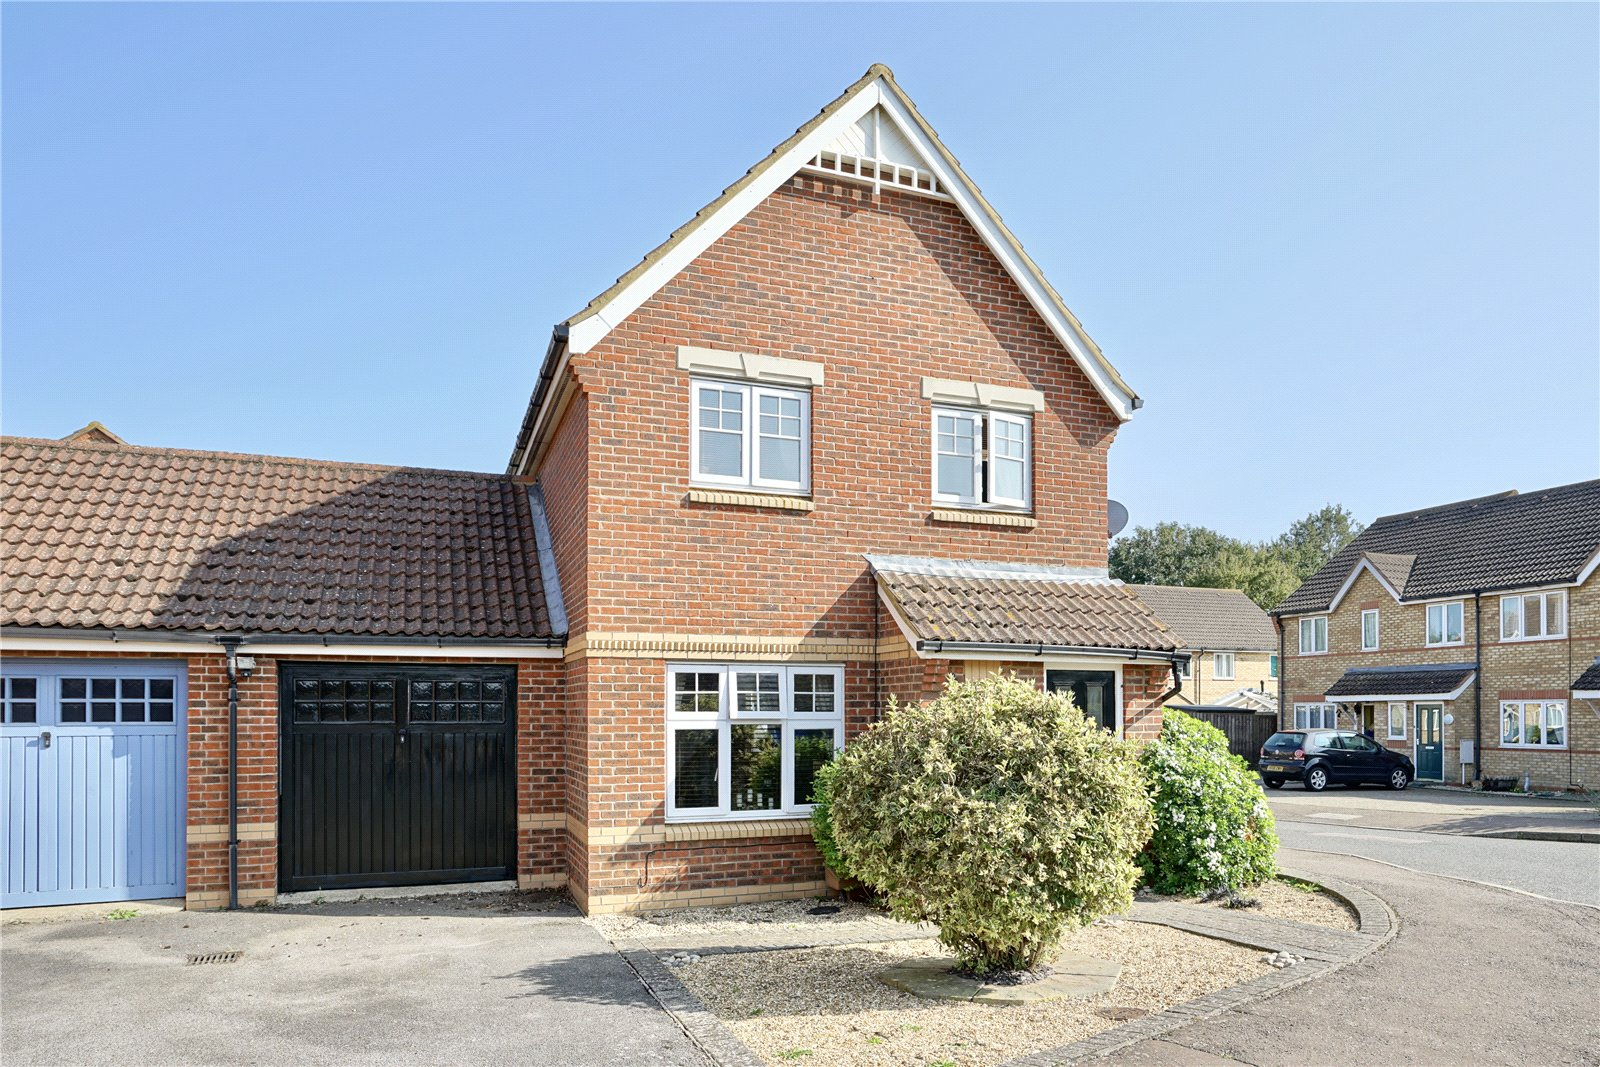 3 bed house for sale in Bluntisham, PE28 3XT  - Property Image 1